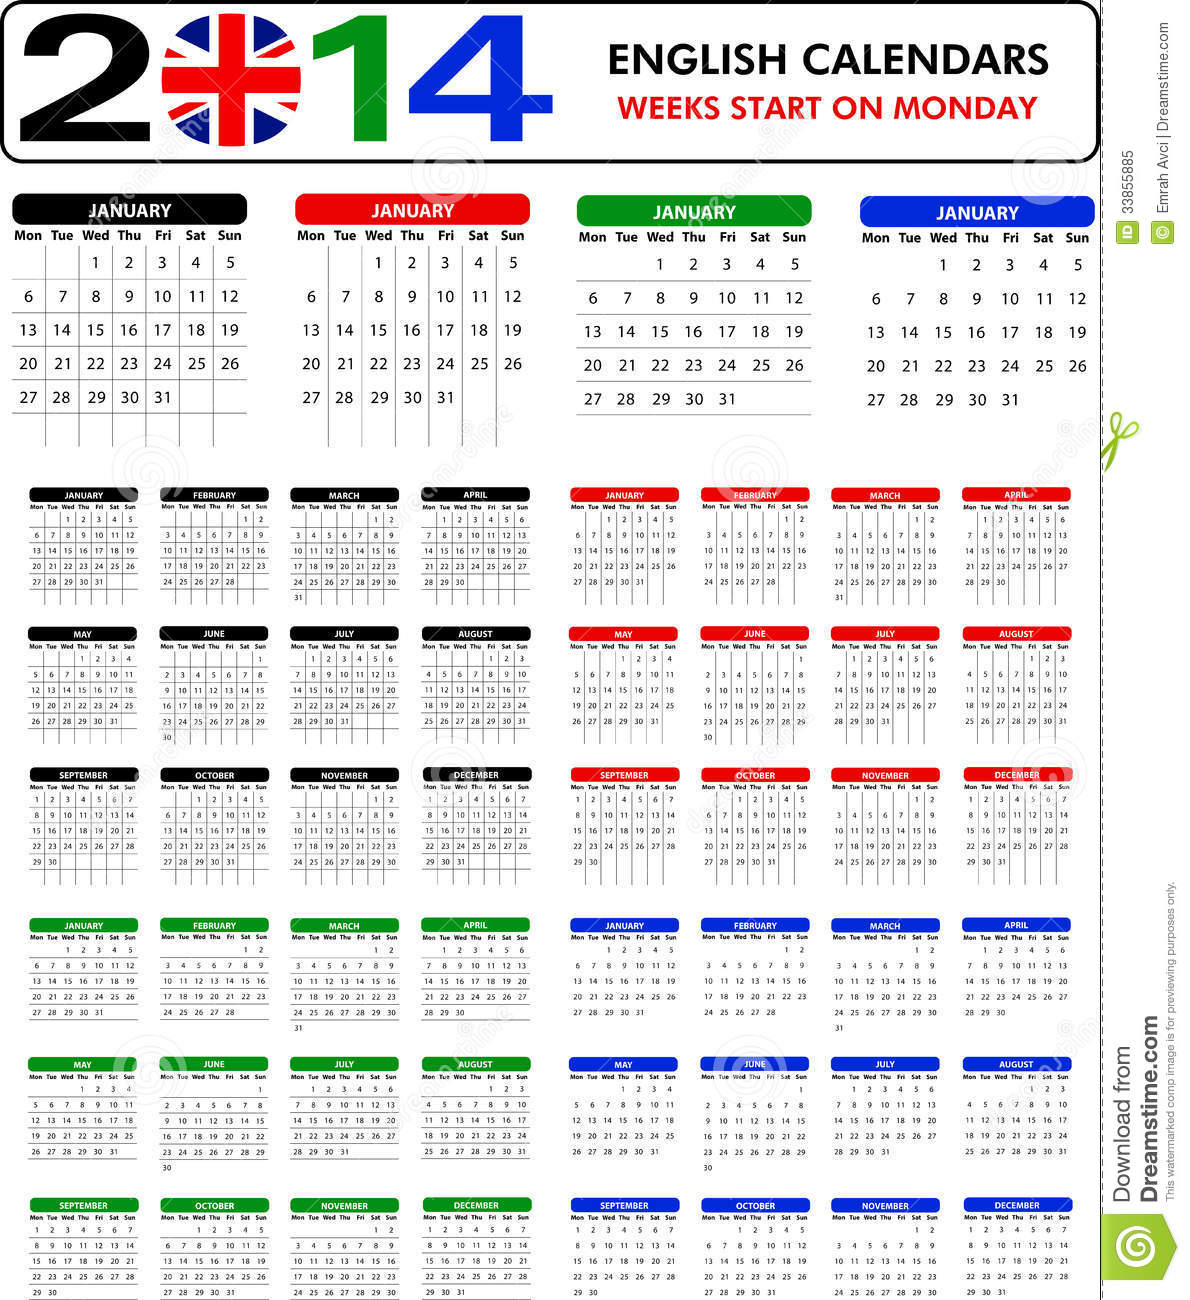 Calendar English : Illustration calendar english pics stock photos all